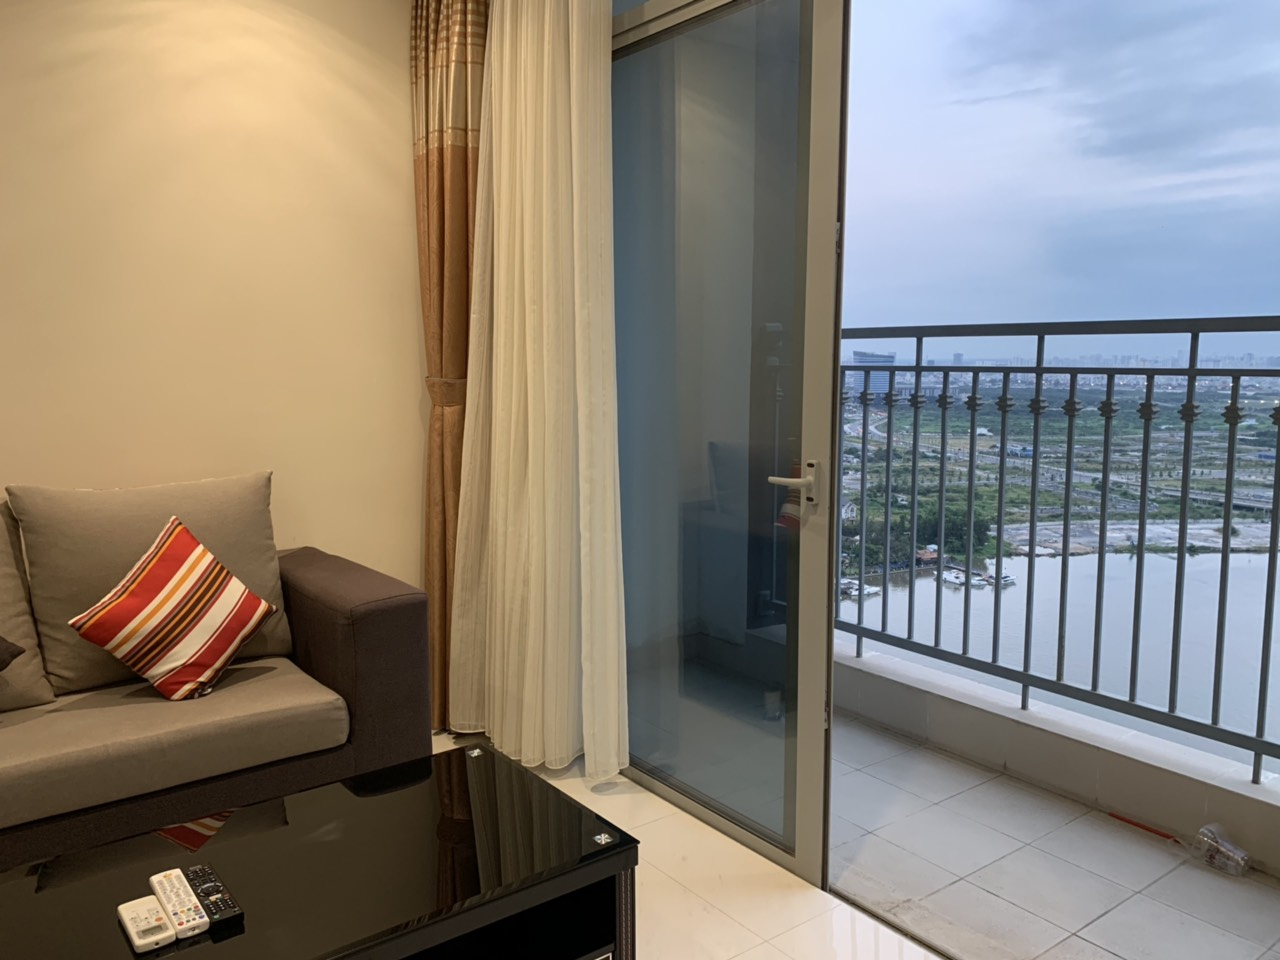 apartment for rent vinhomes central park binh thanh district hcmc BT105814 (7)